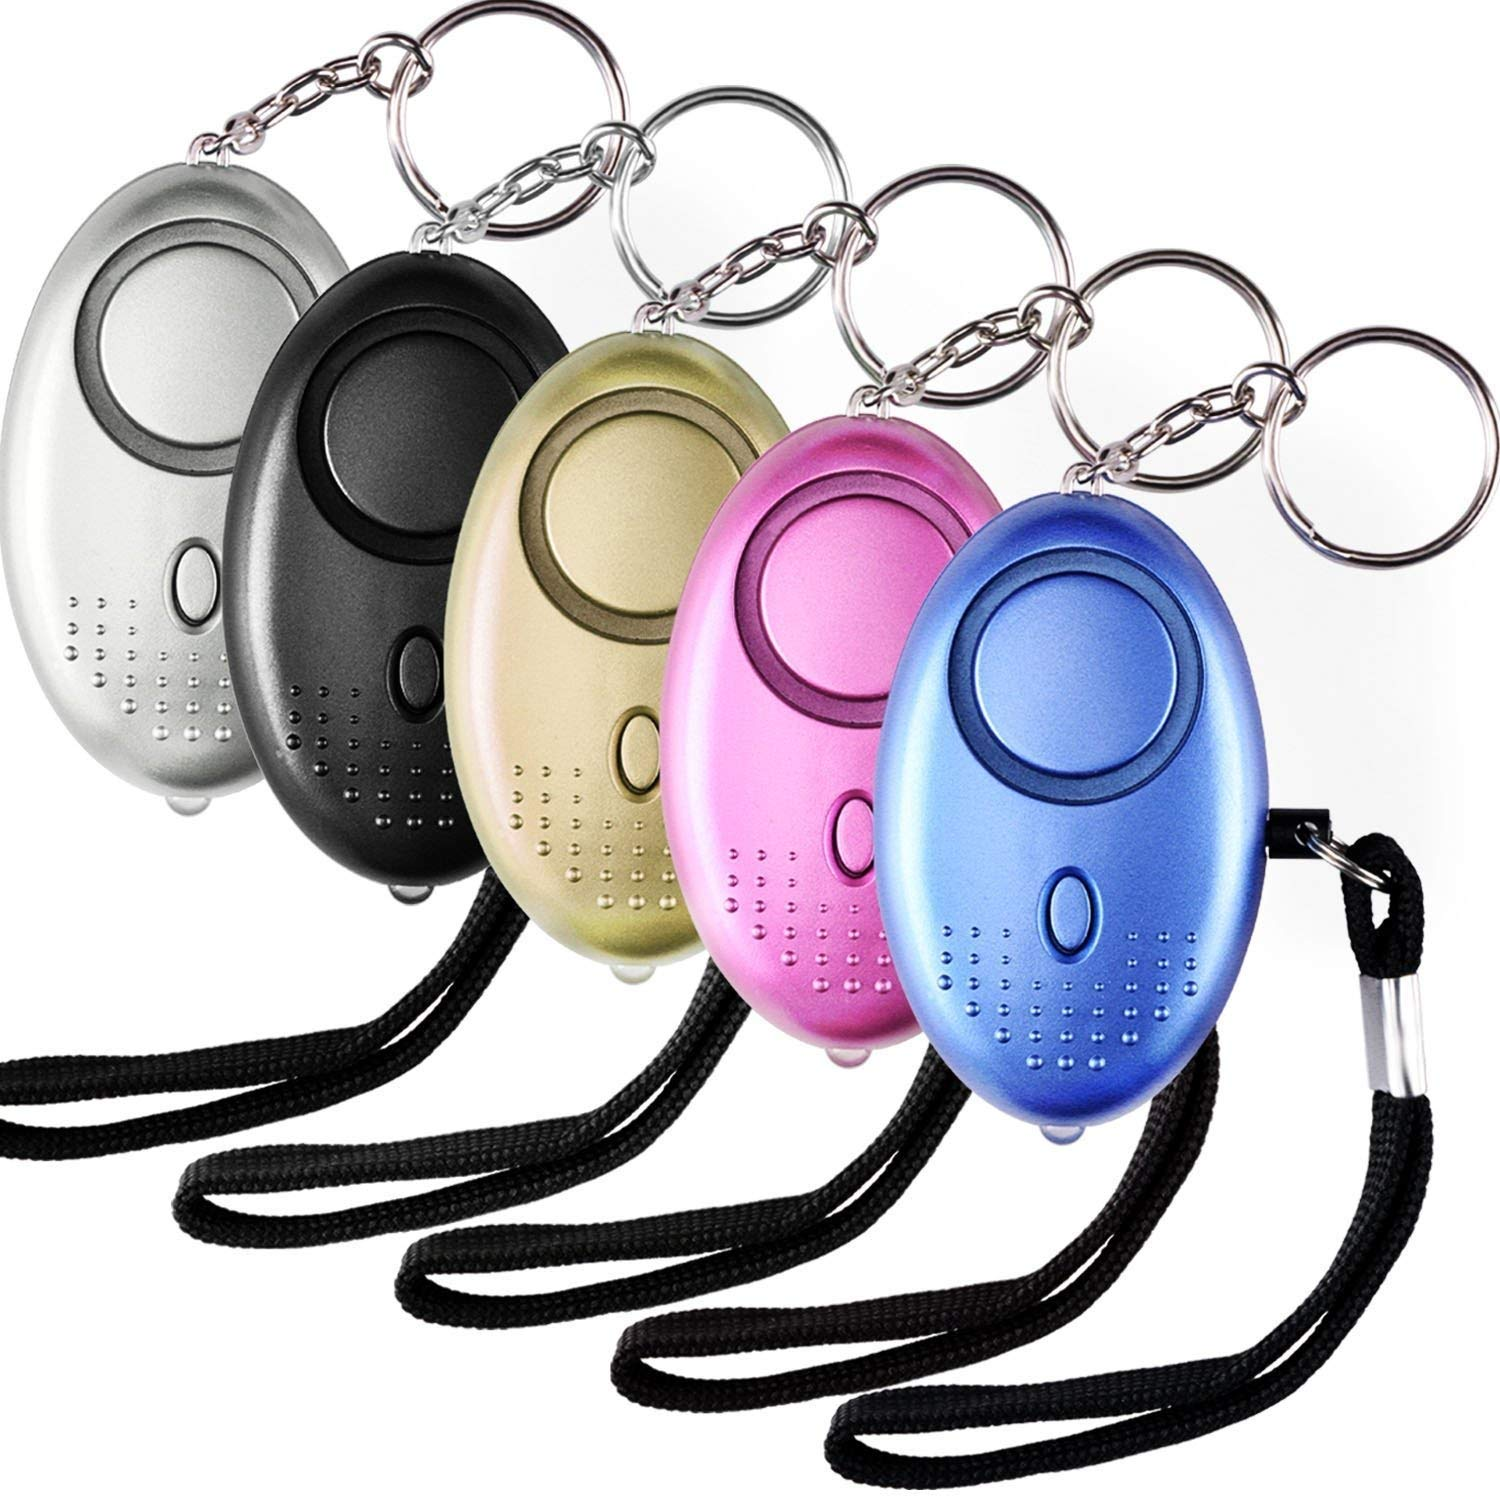 130 dB Loud SOS Emergency Personal Alarm Keychain With Positioning Rape Attack Self-Defense Alarm Keyring Fit for Elderly Kids Women Night Workers